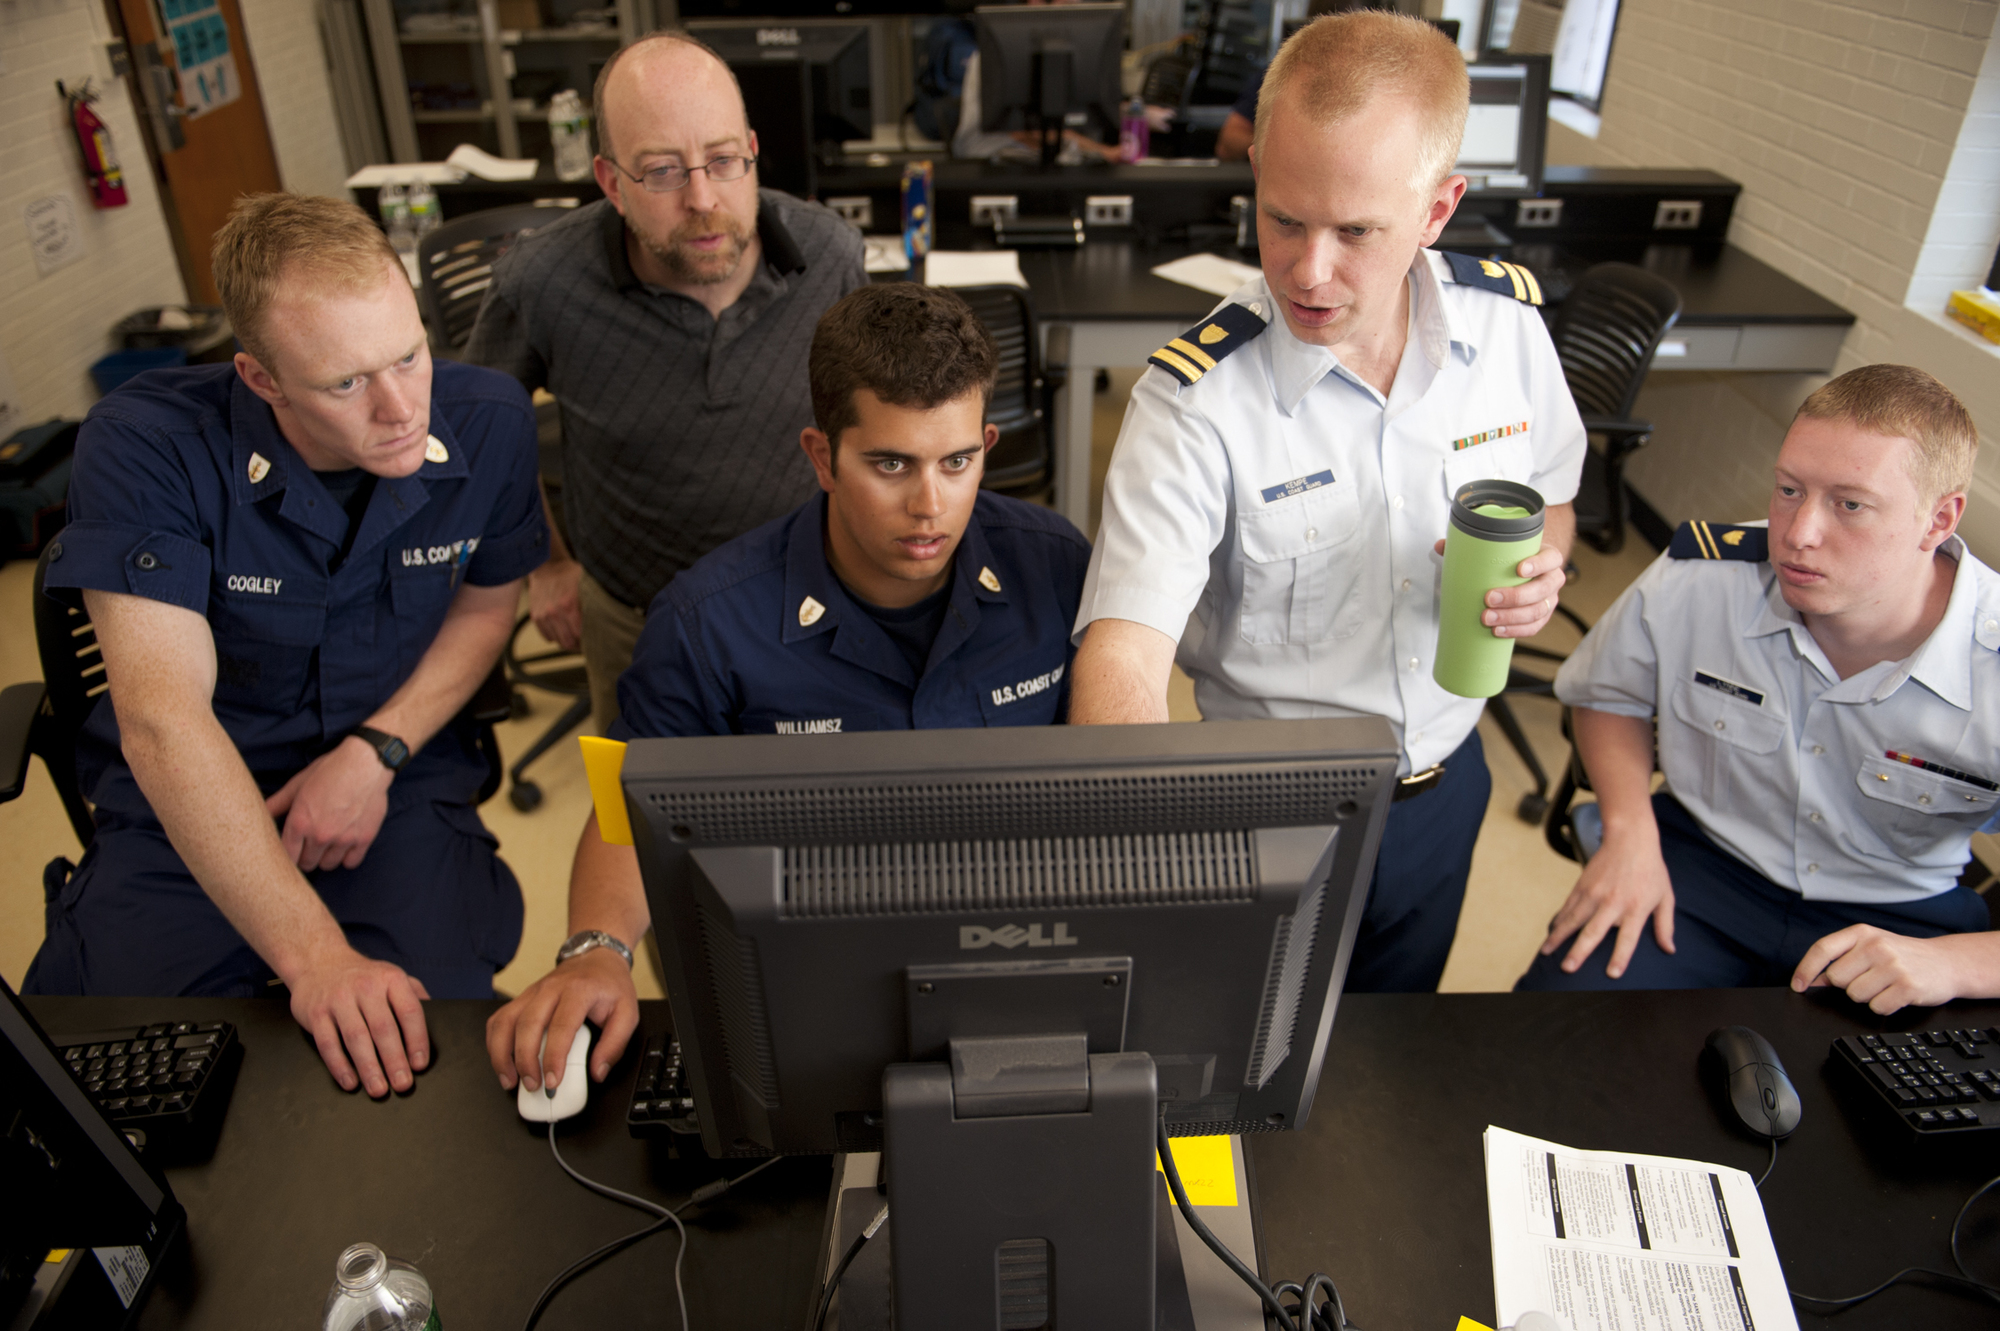 Second Class Cadets test their network connection, April 19, 2012, during the 2012 Cyber Defense Exercise at the U.S. Coast Guard Academy.